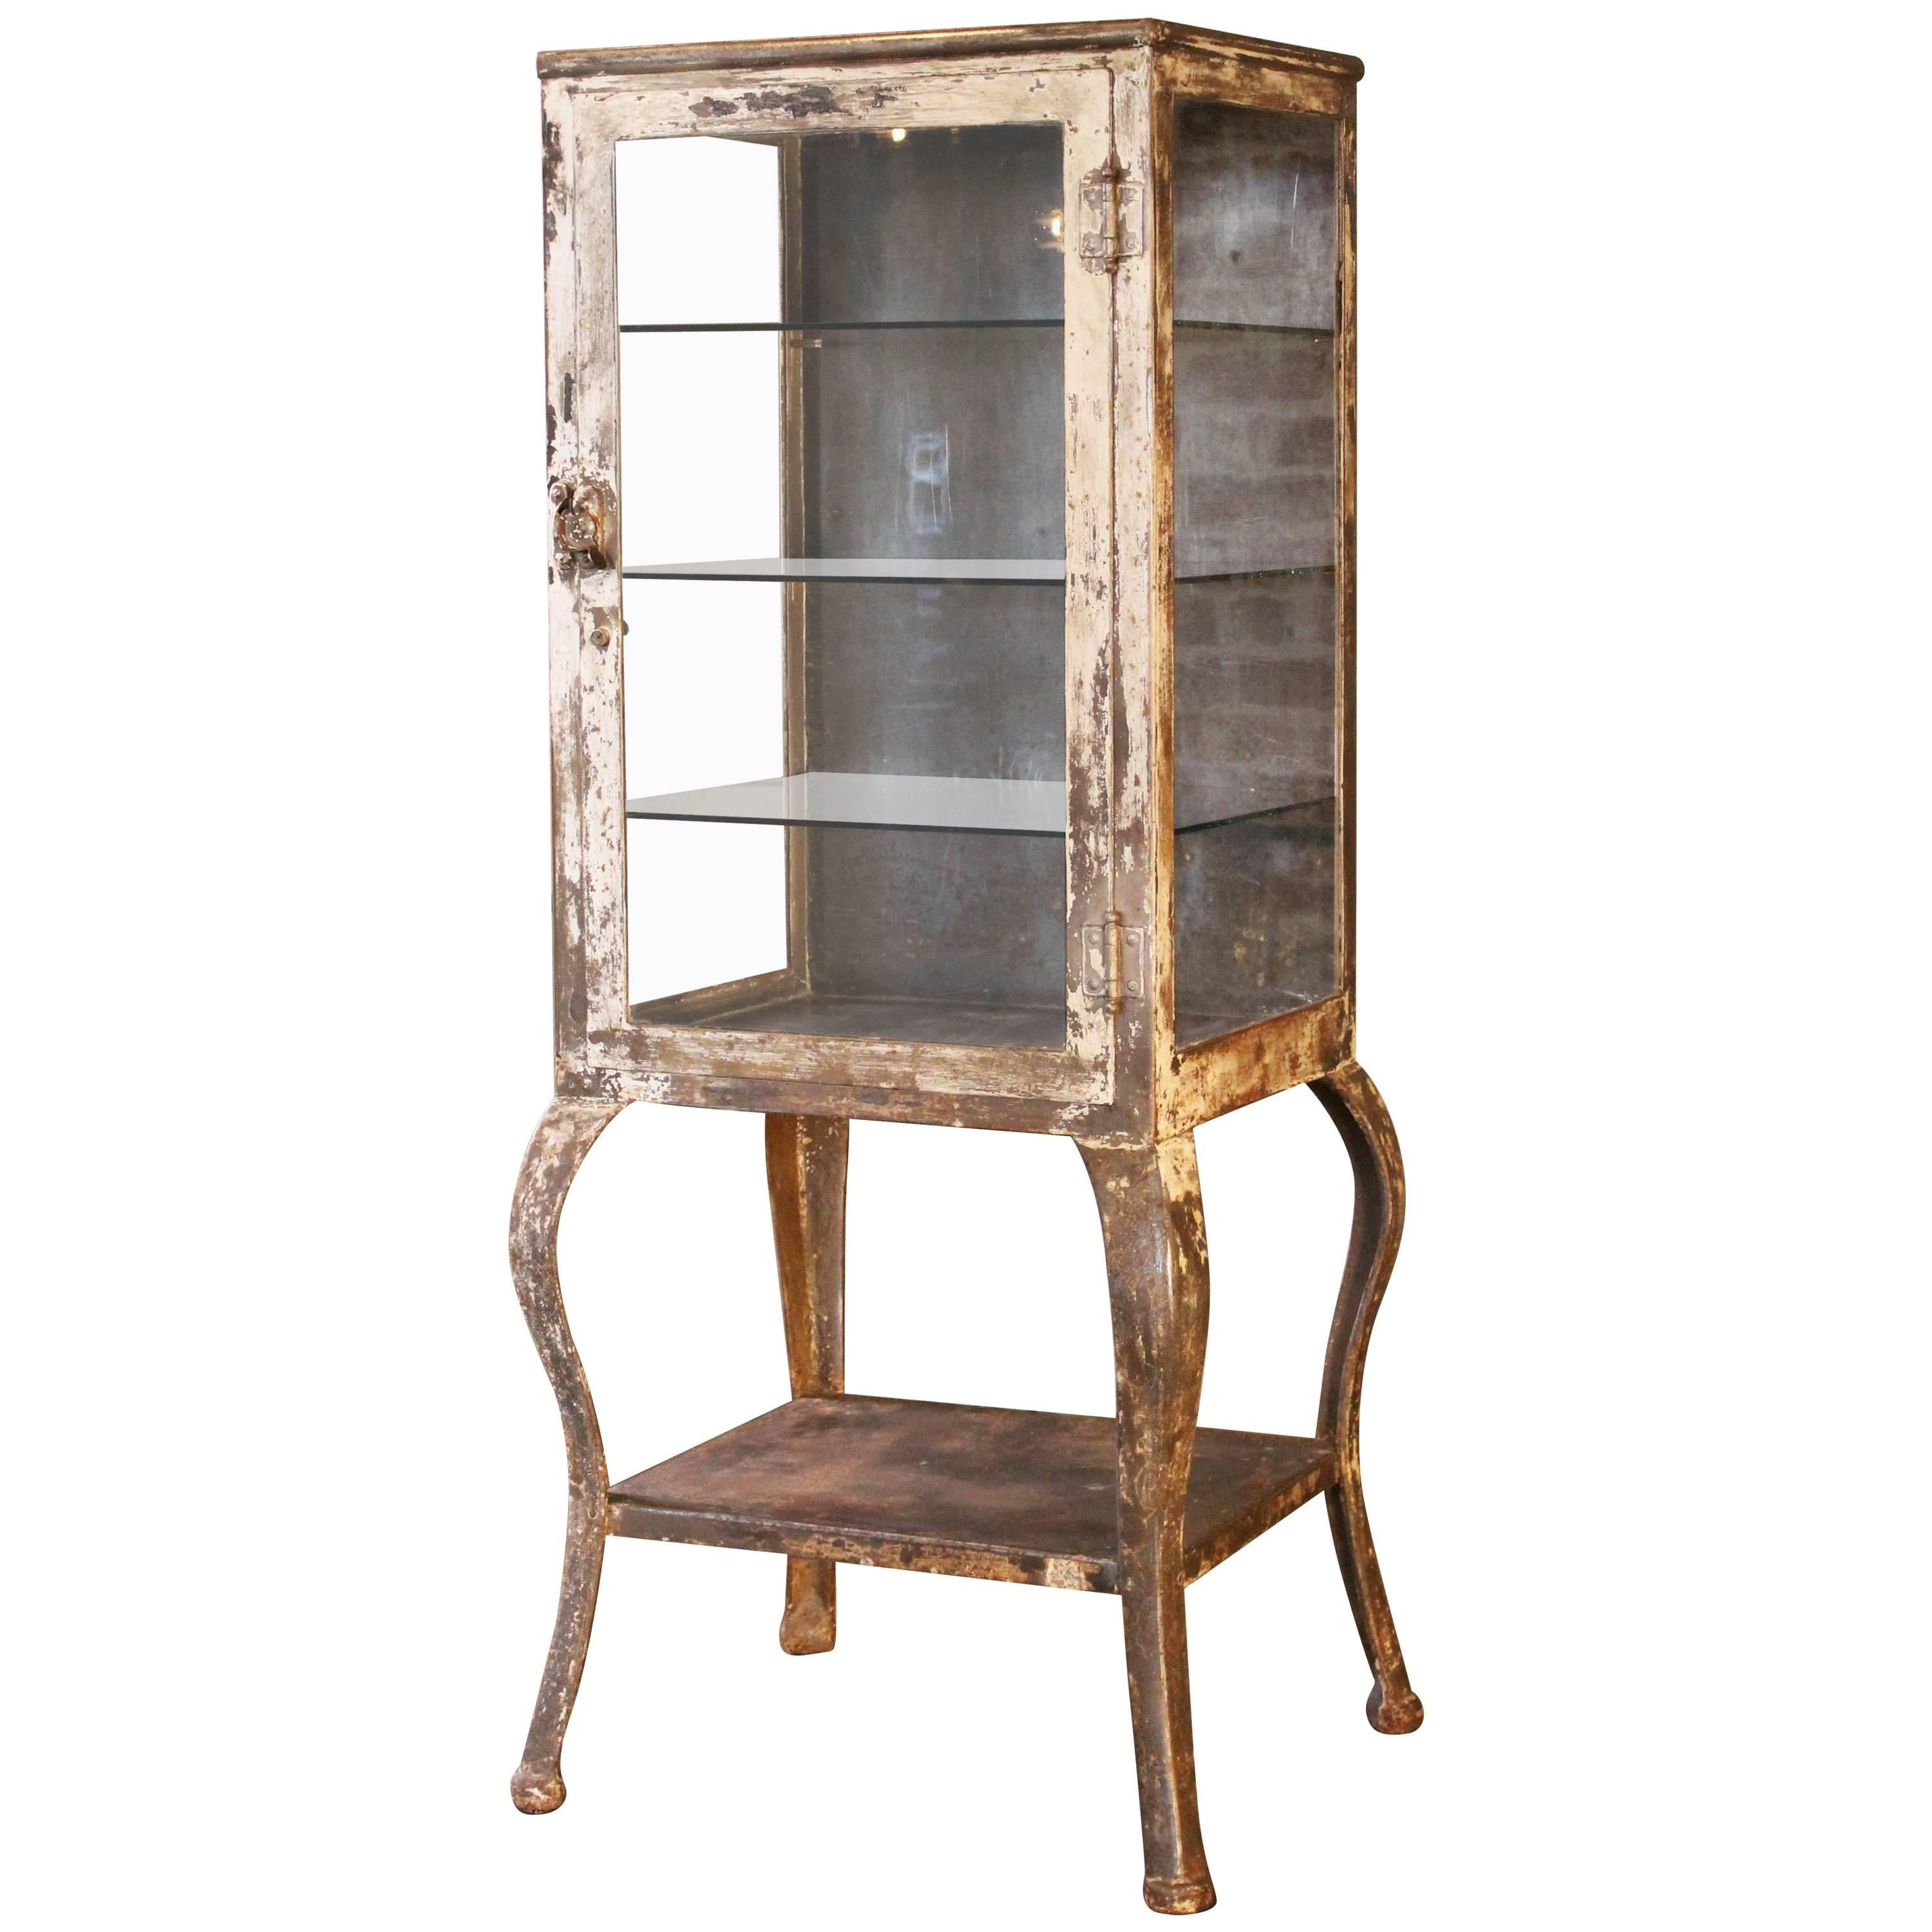 Antique Medical Cabinet With Cabriole Legs, Steel And Glass Apothecary For  Sale